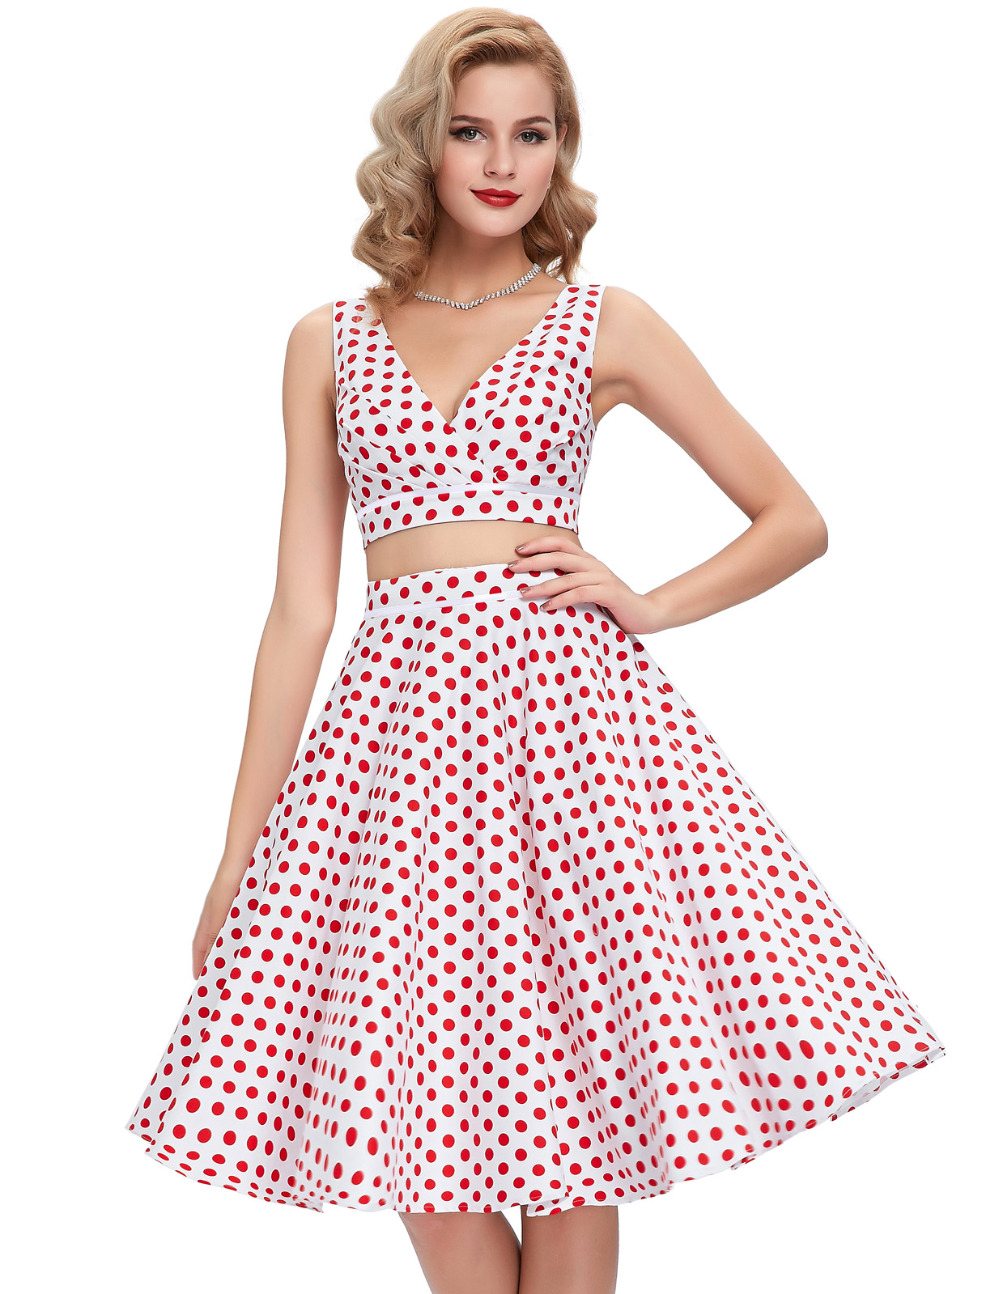 Where can i buy 50's style dresses